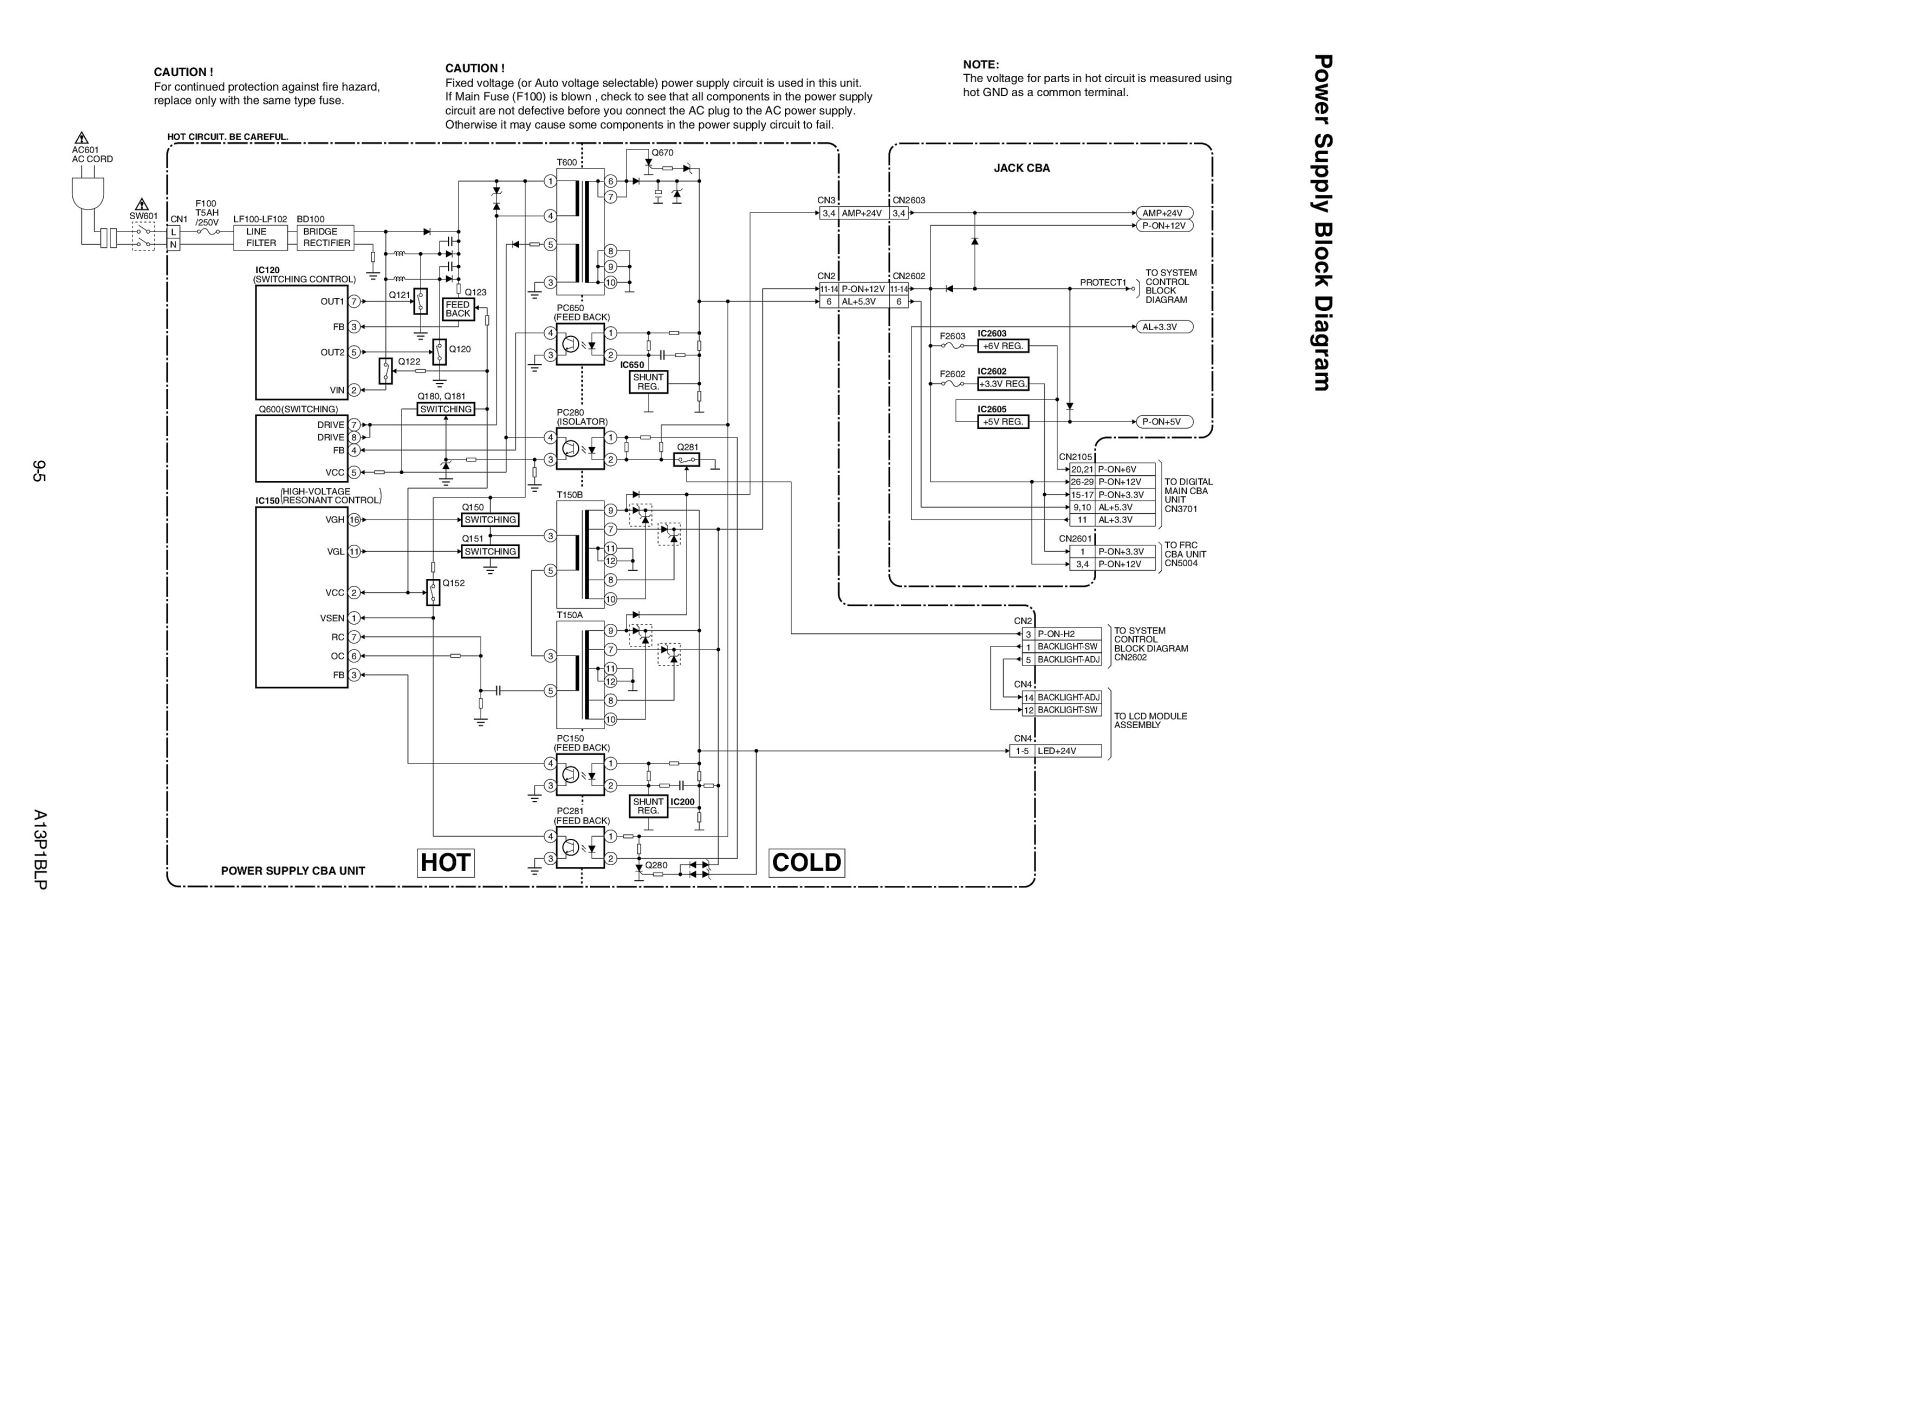 Panasonic LCD TV TH-L32U20 service manaual schematics